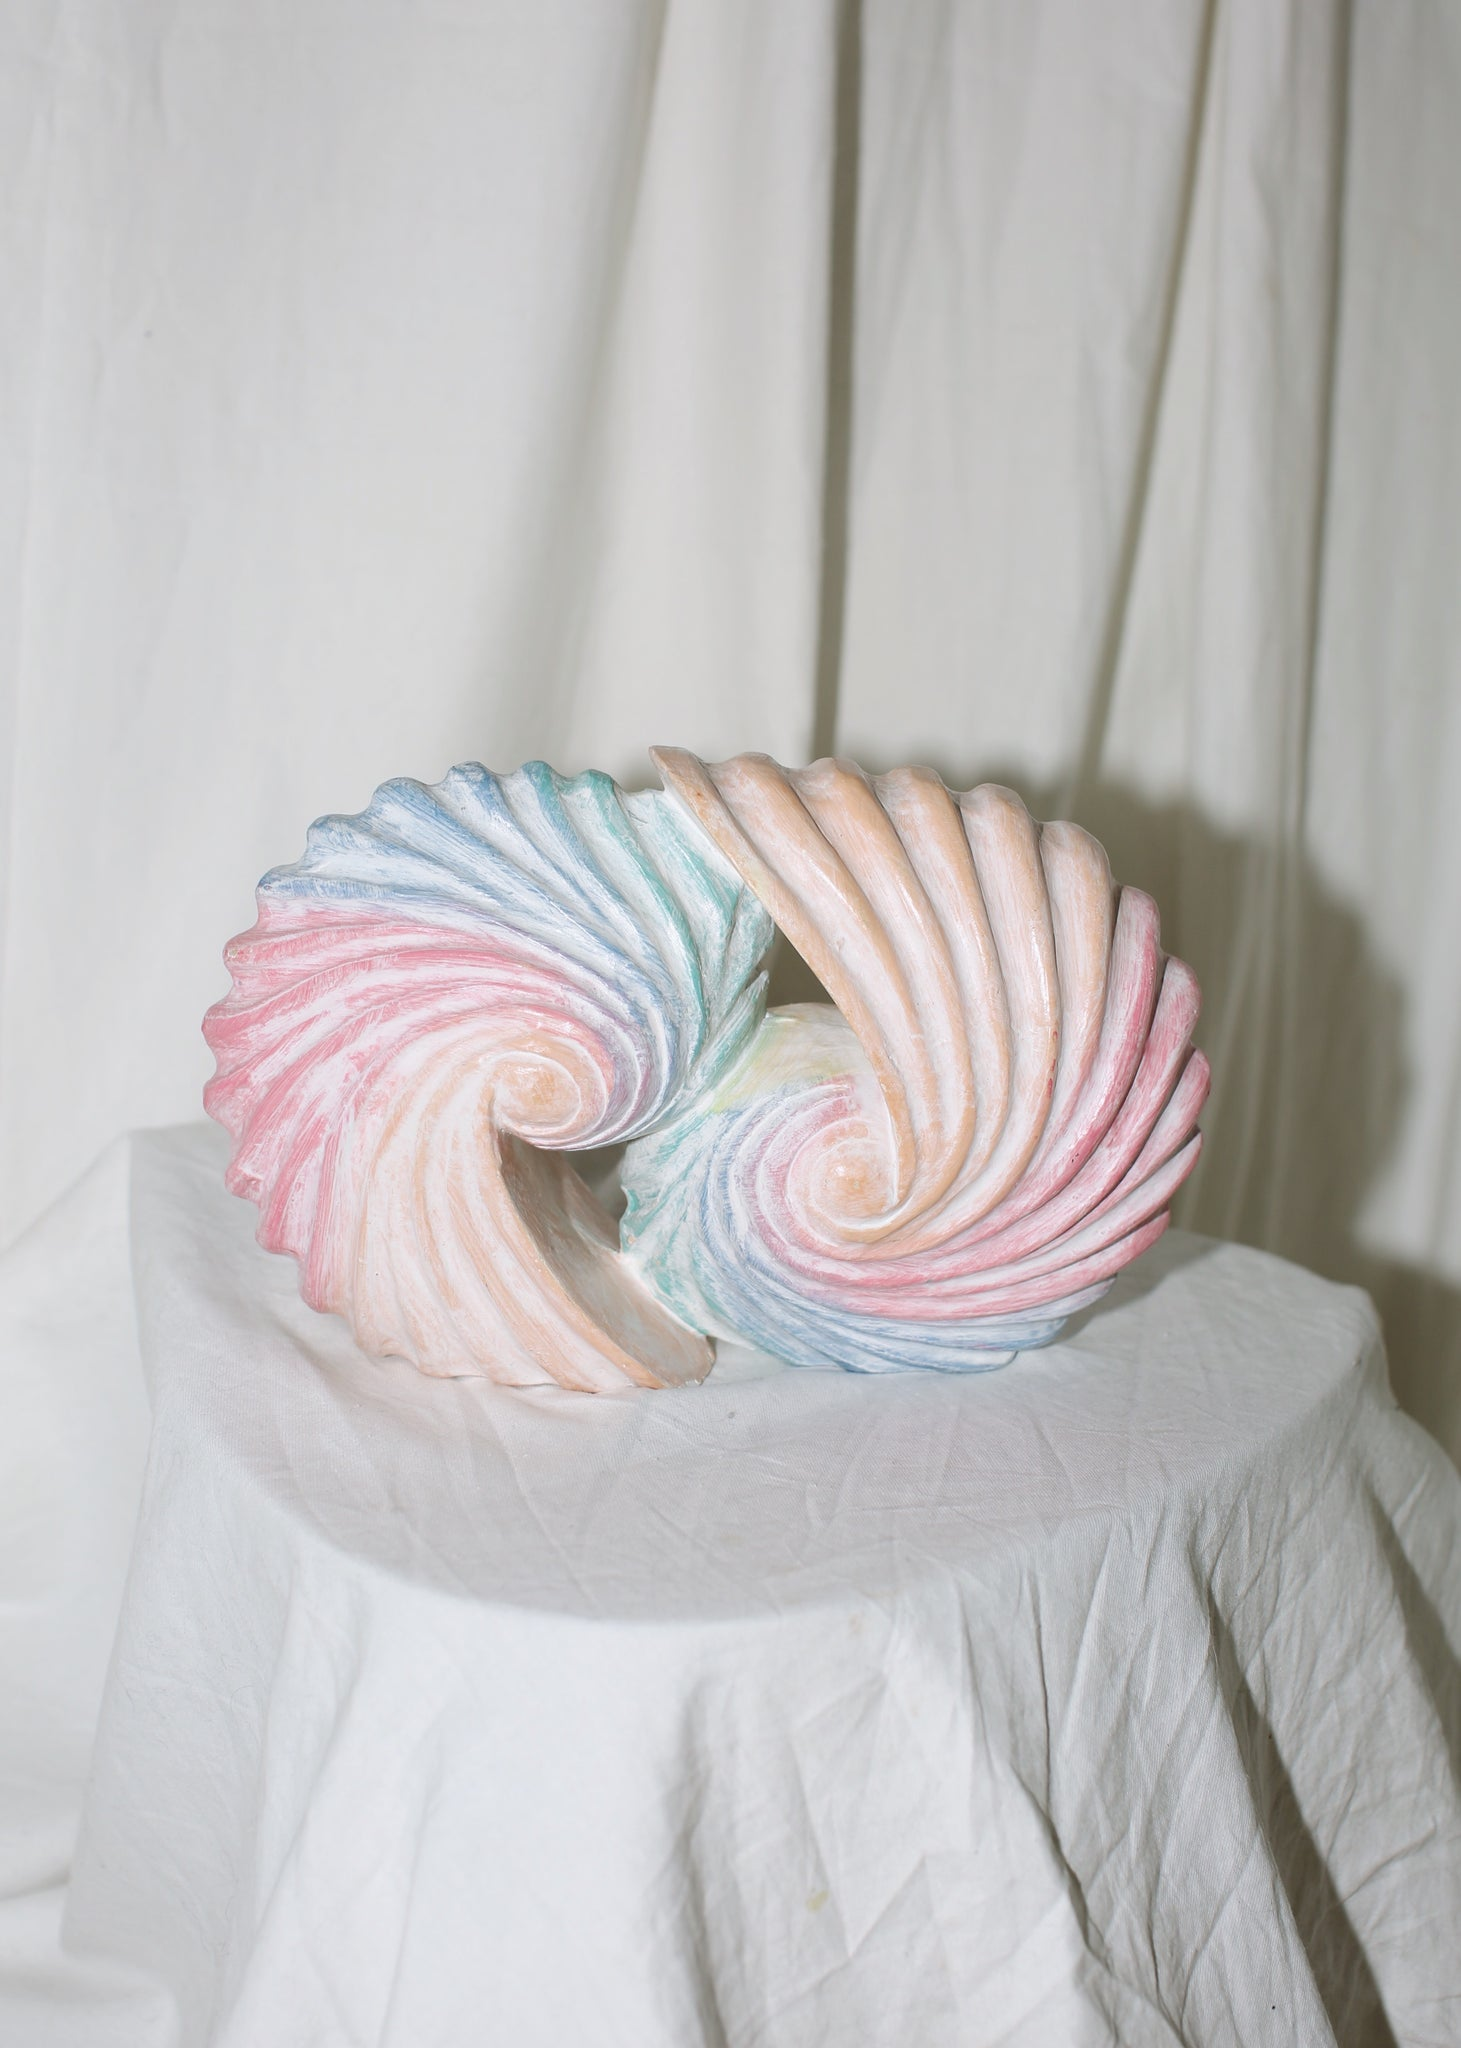 VINTAGE PASTEL COLORED WOOD SEASHELL STATUE